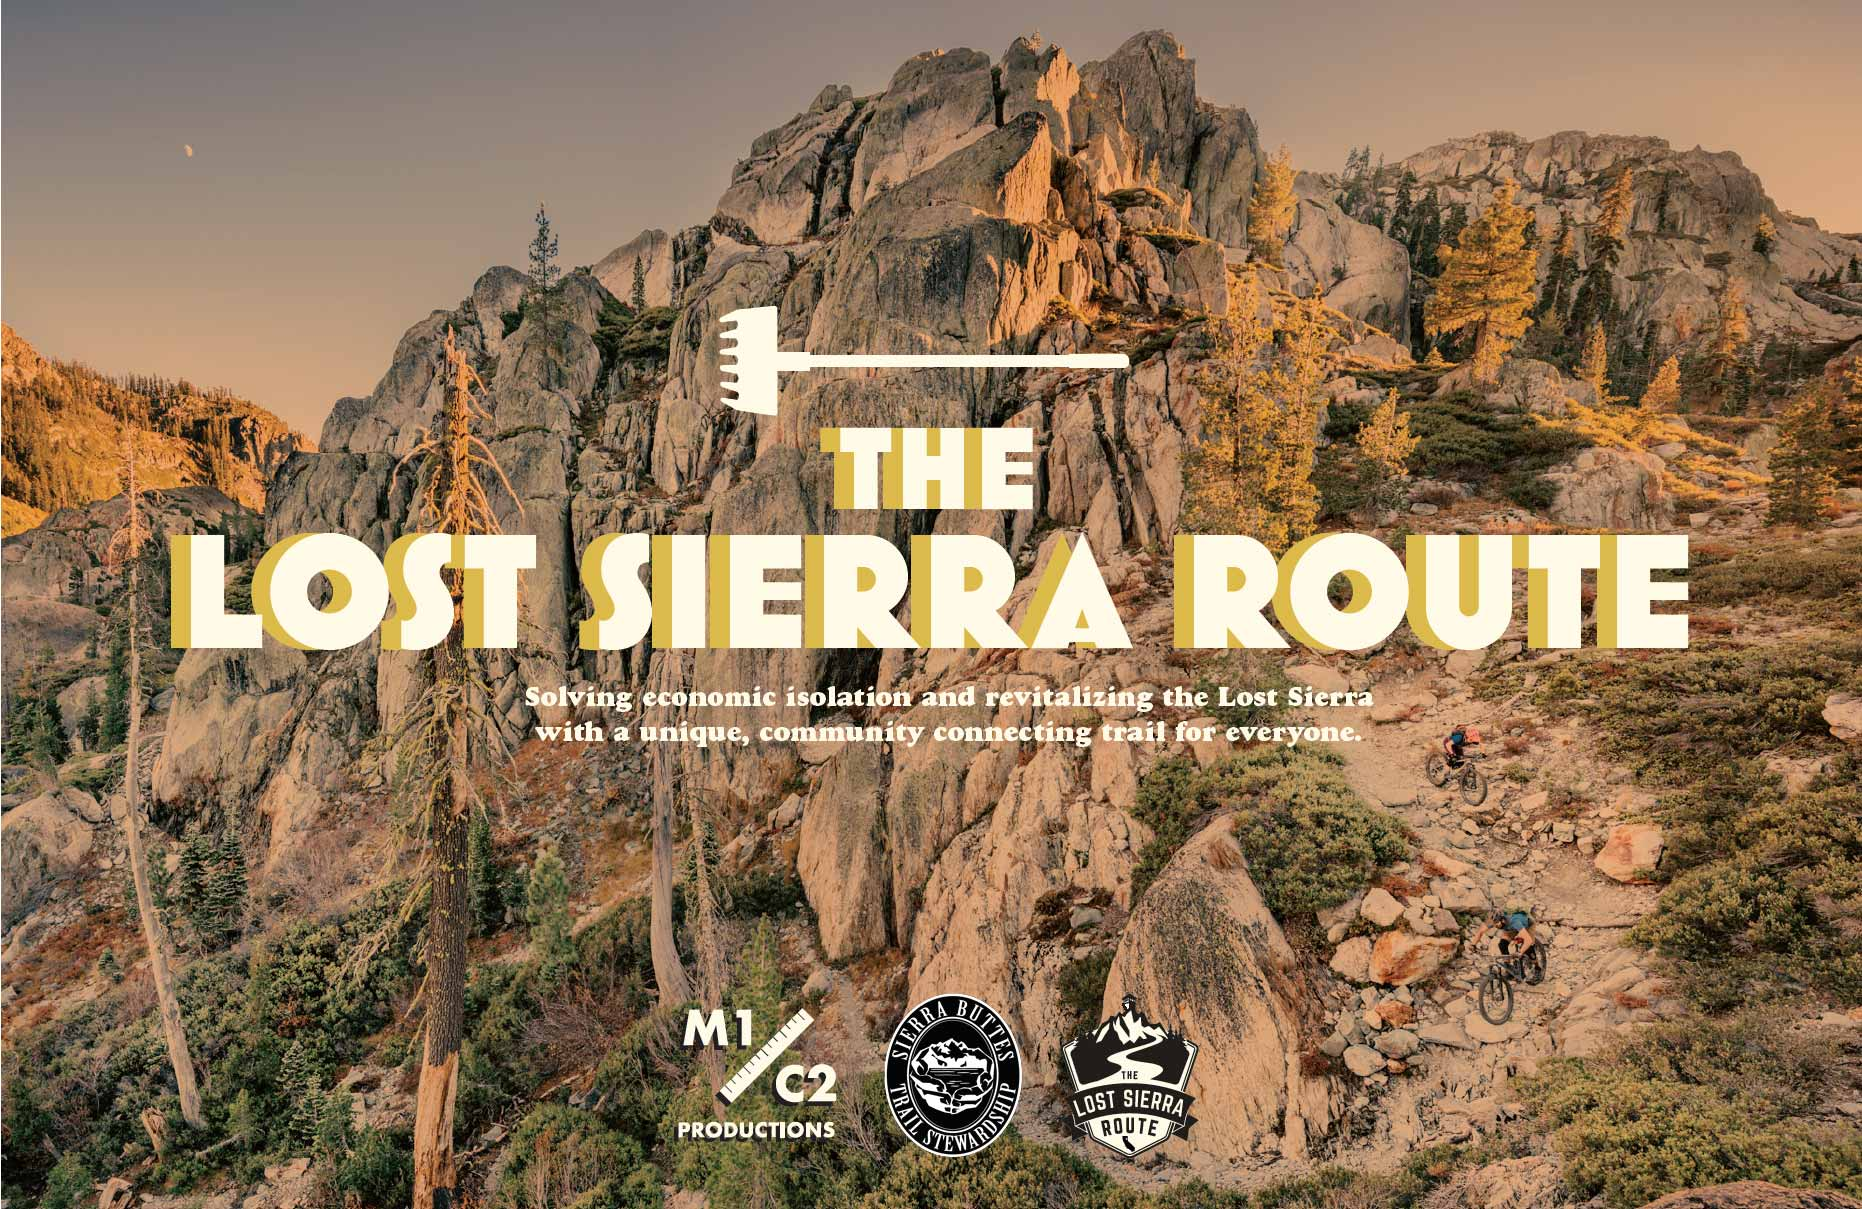 THE LOST SIERRA ROUTE Solving economic isolation and revitalizing the Lost Sierra with a unique, community connecting trail for everyone.